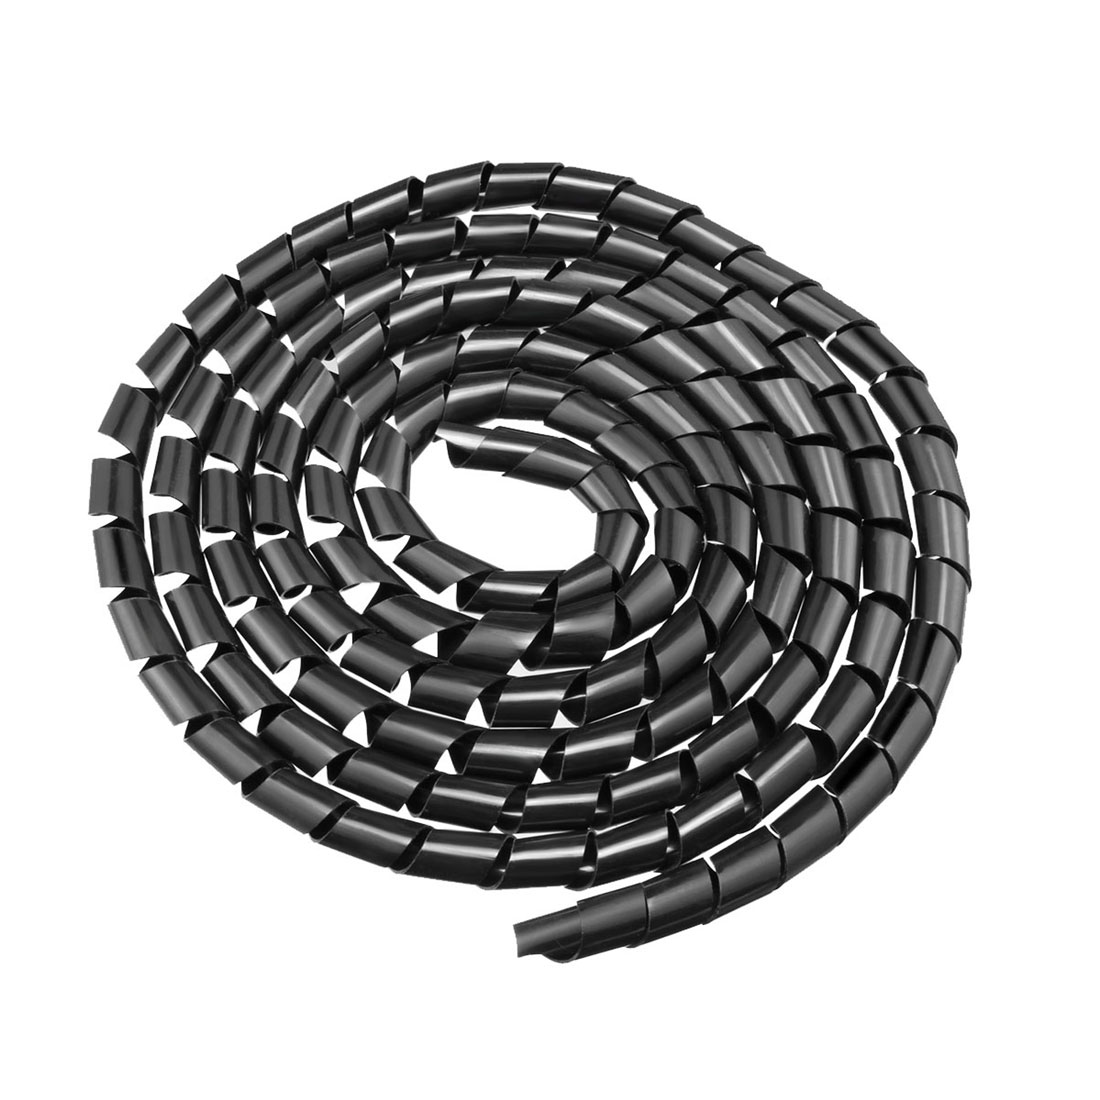 14mm Flexible Spiral Tube Cable Wire Wrap Computer Manage Cord 4M Length Black